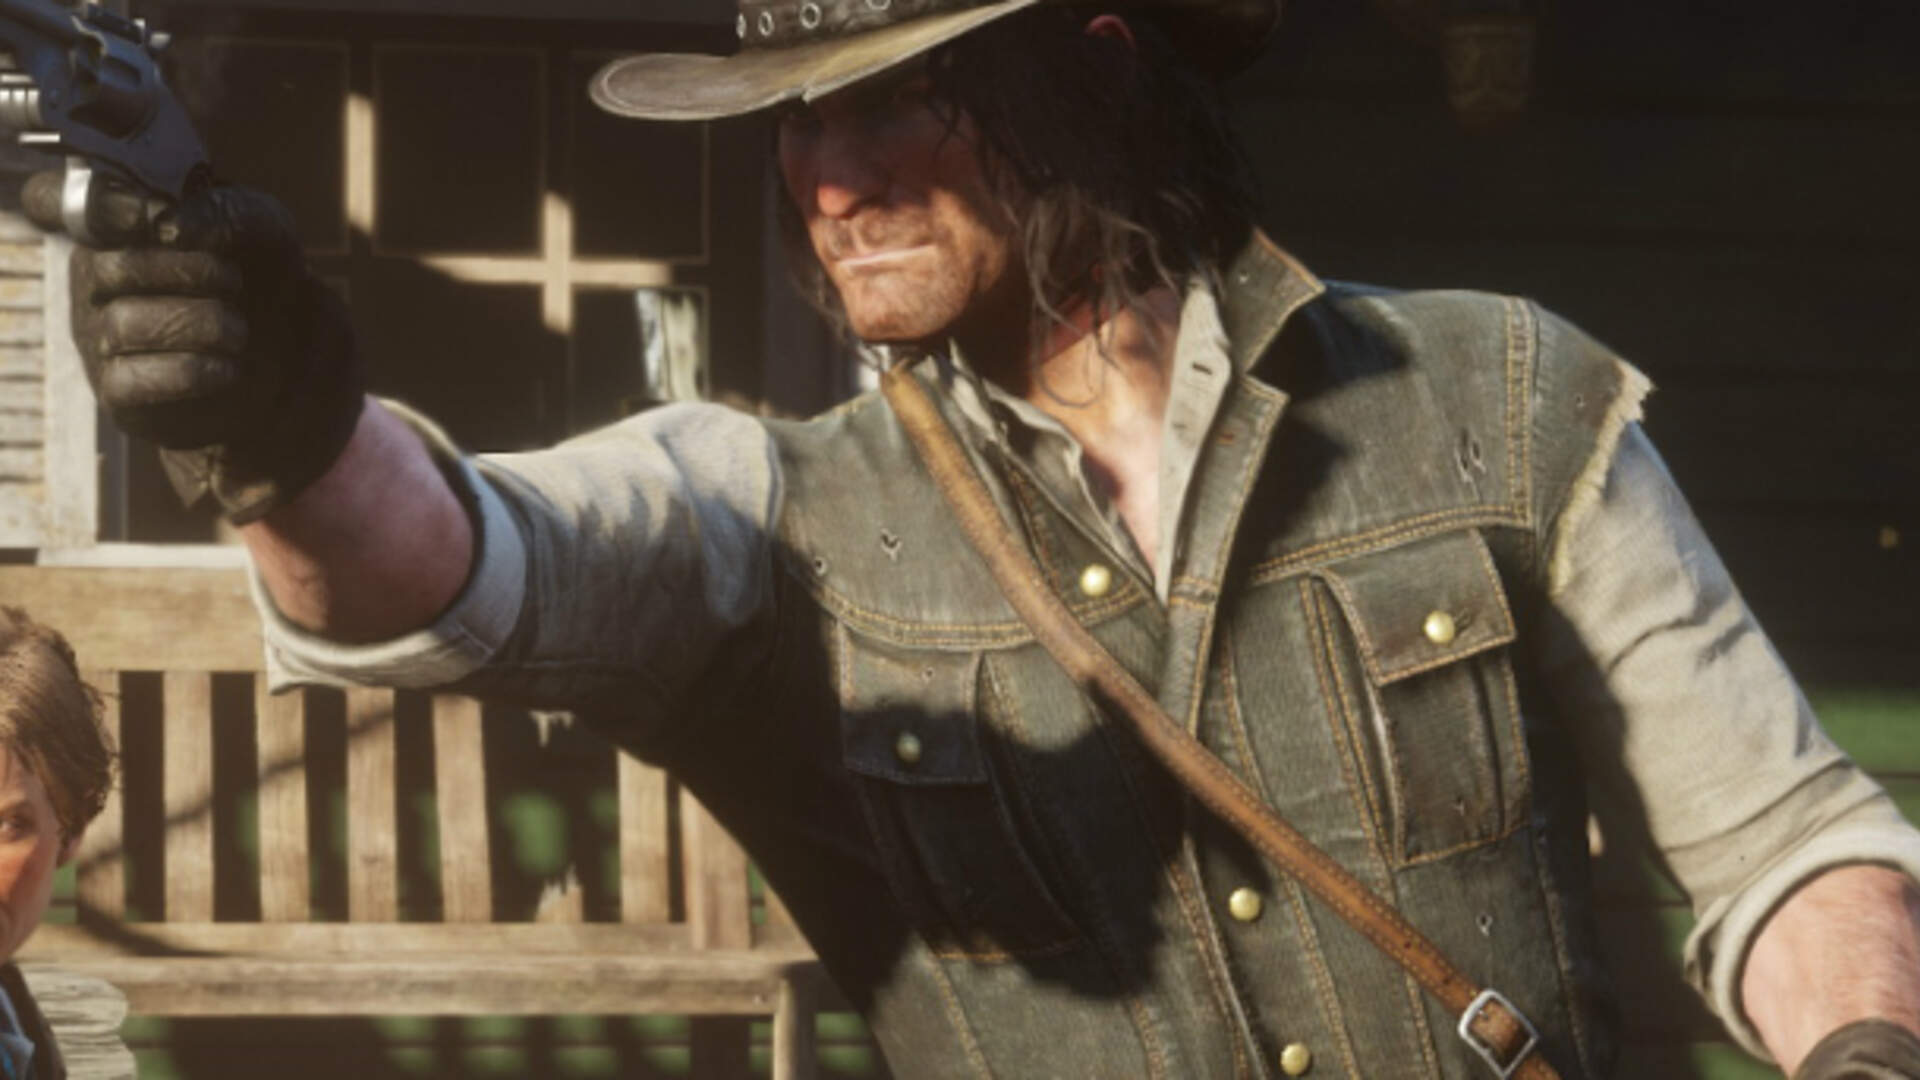 Red Dead Redemption 2 Review Roundup, Release Date, Gameplay, Special Editions, Characters, PC Version - Everything we Know